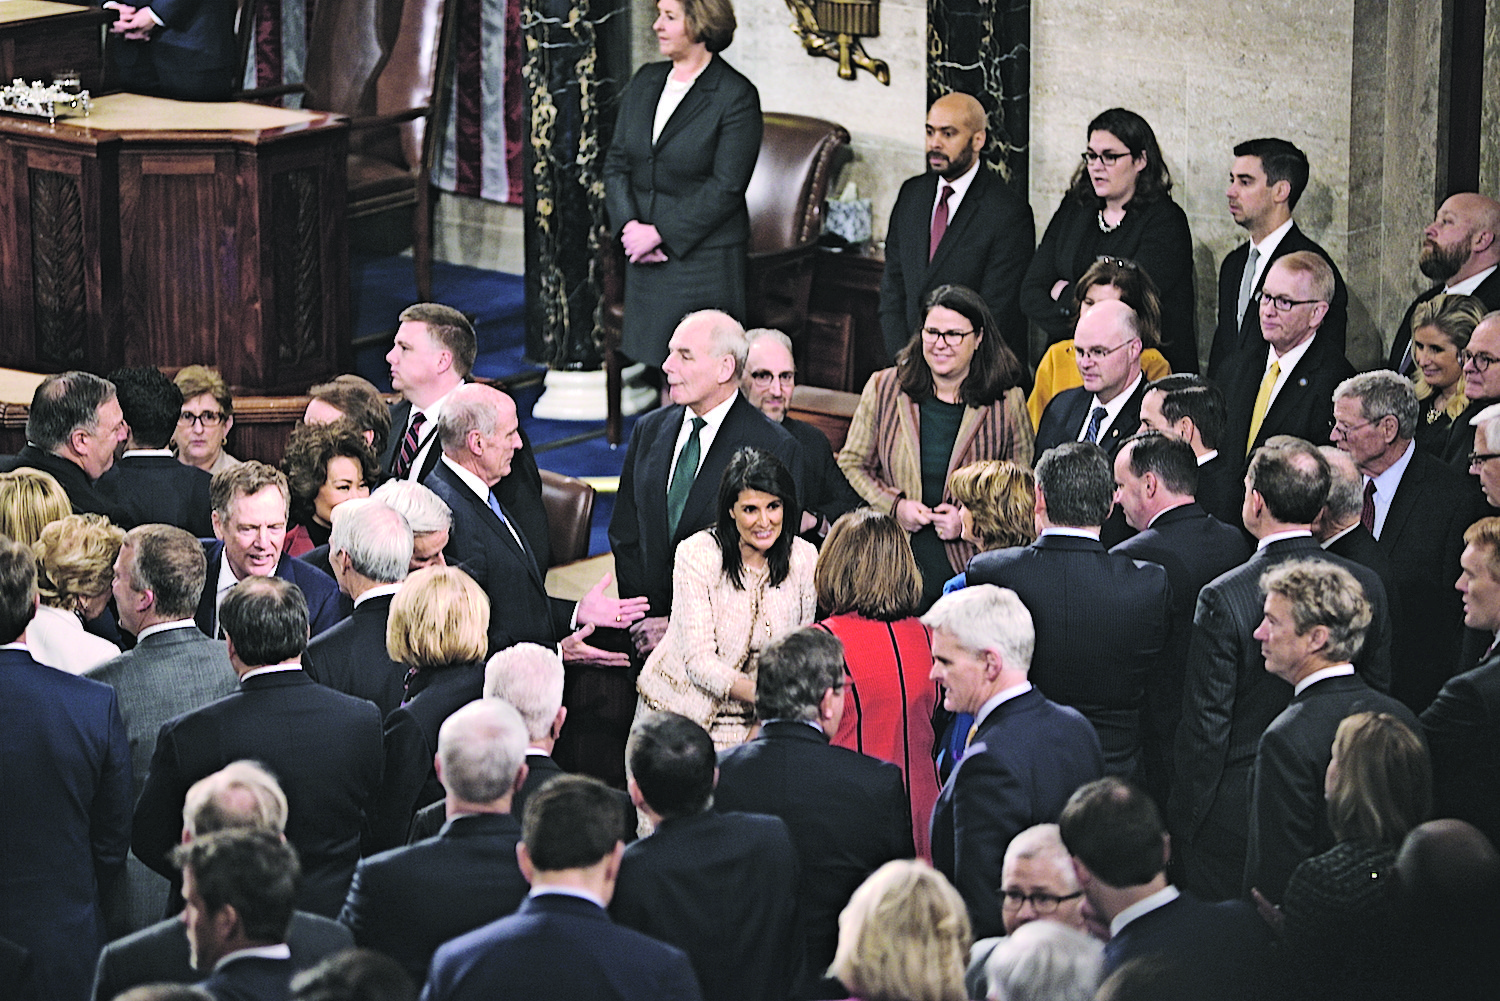 U.N. Ambassador Nikki Haley greets colleagues at the annual 